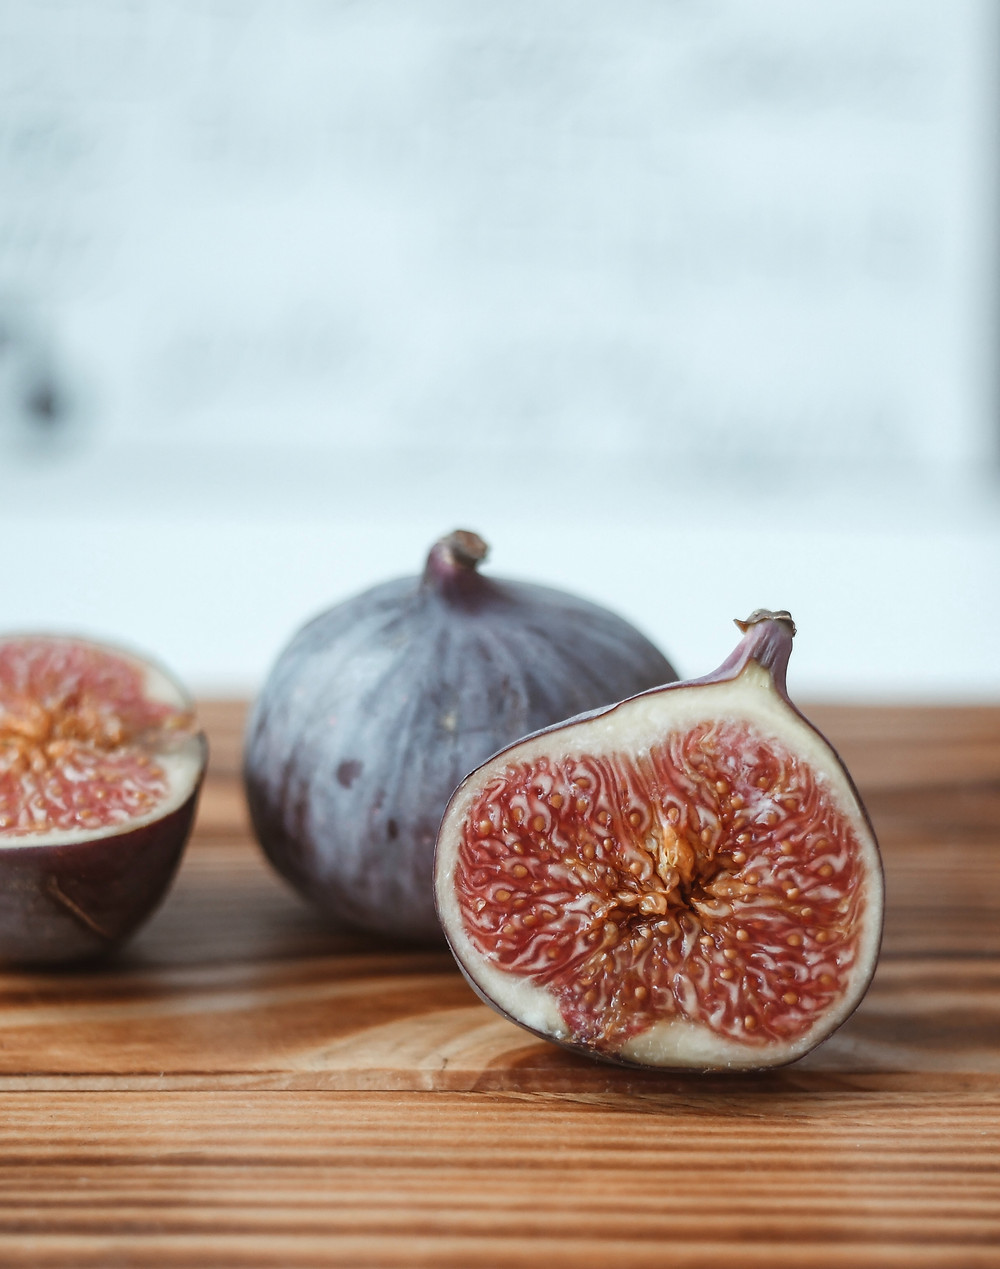 figs cut open and on a table